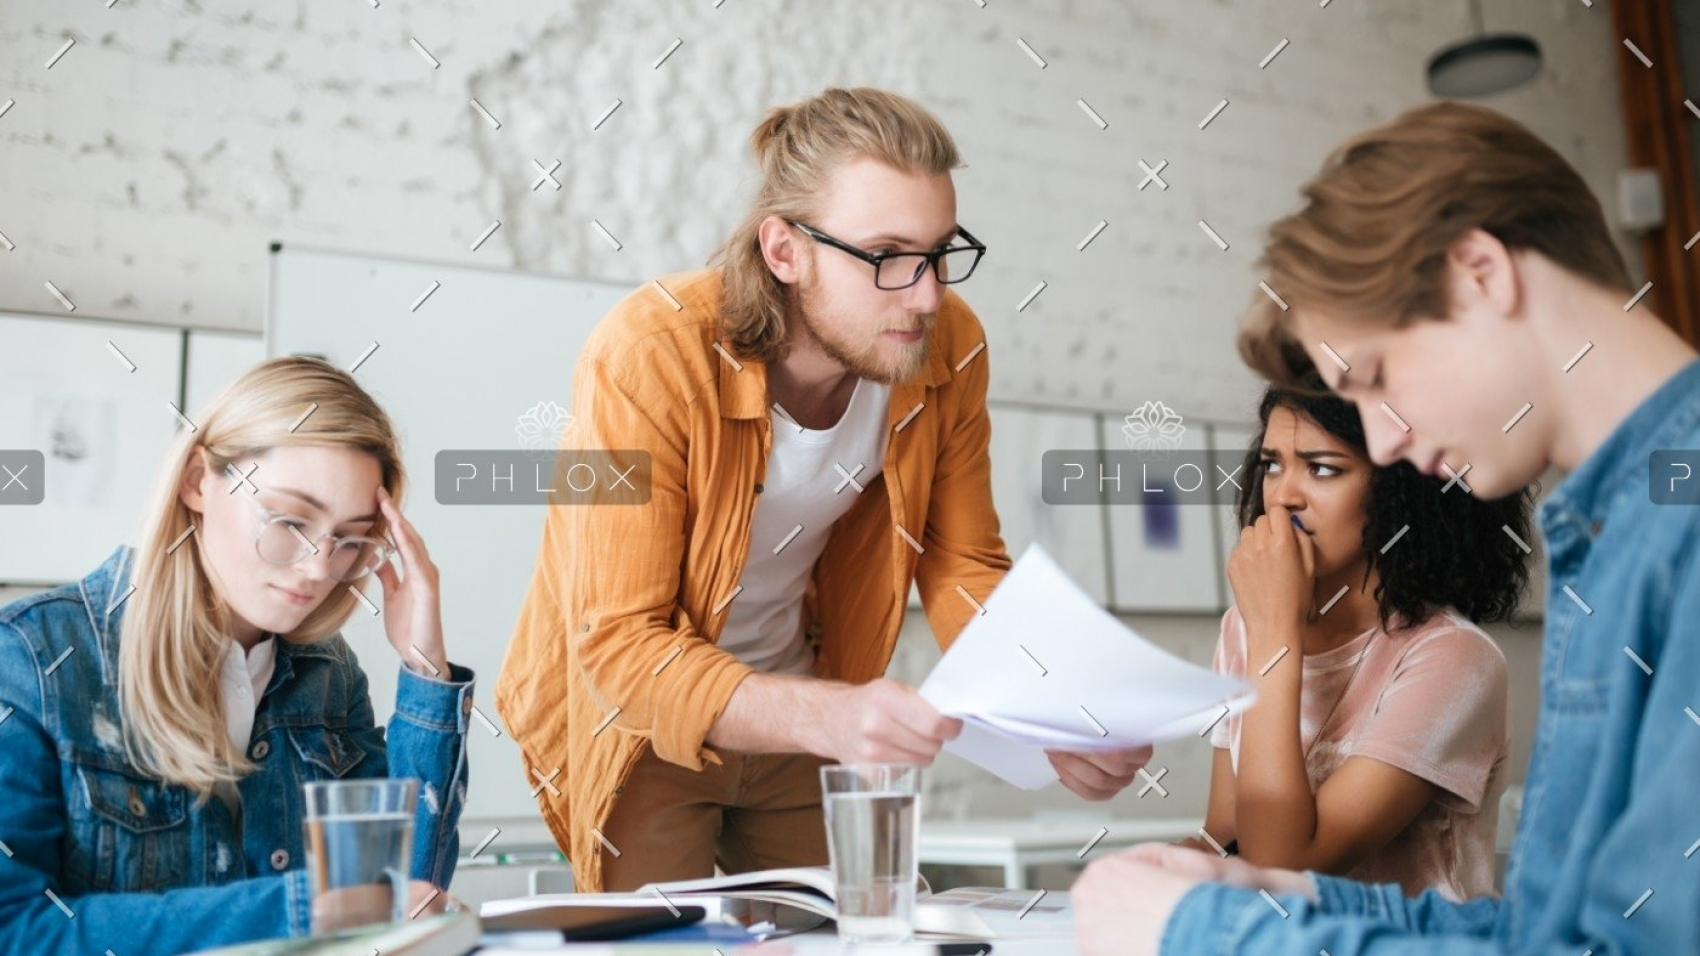 demo-attachment-292-group-of-upset-students-sitting-at-the-table-with-E5YW9L4